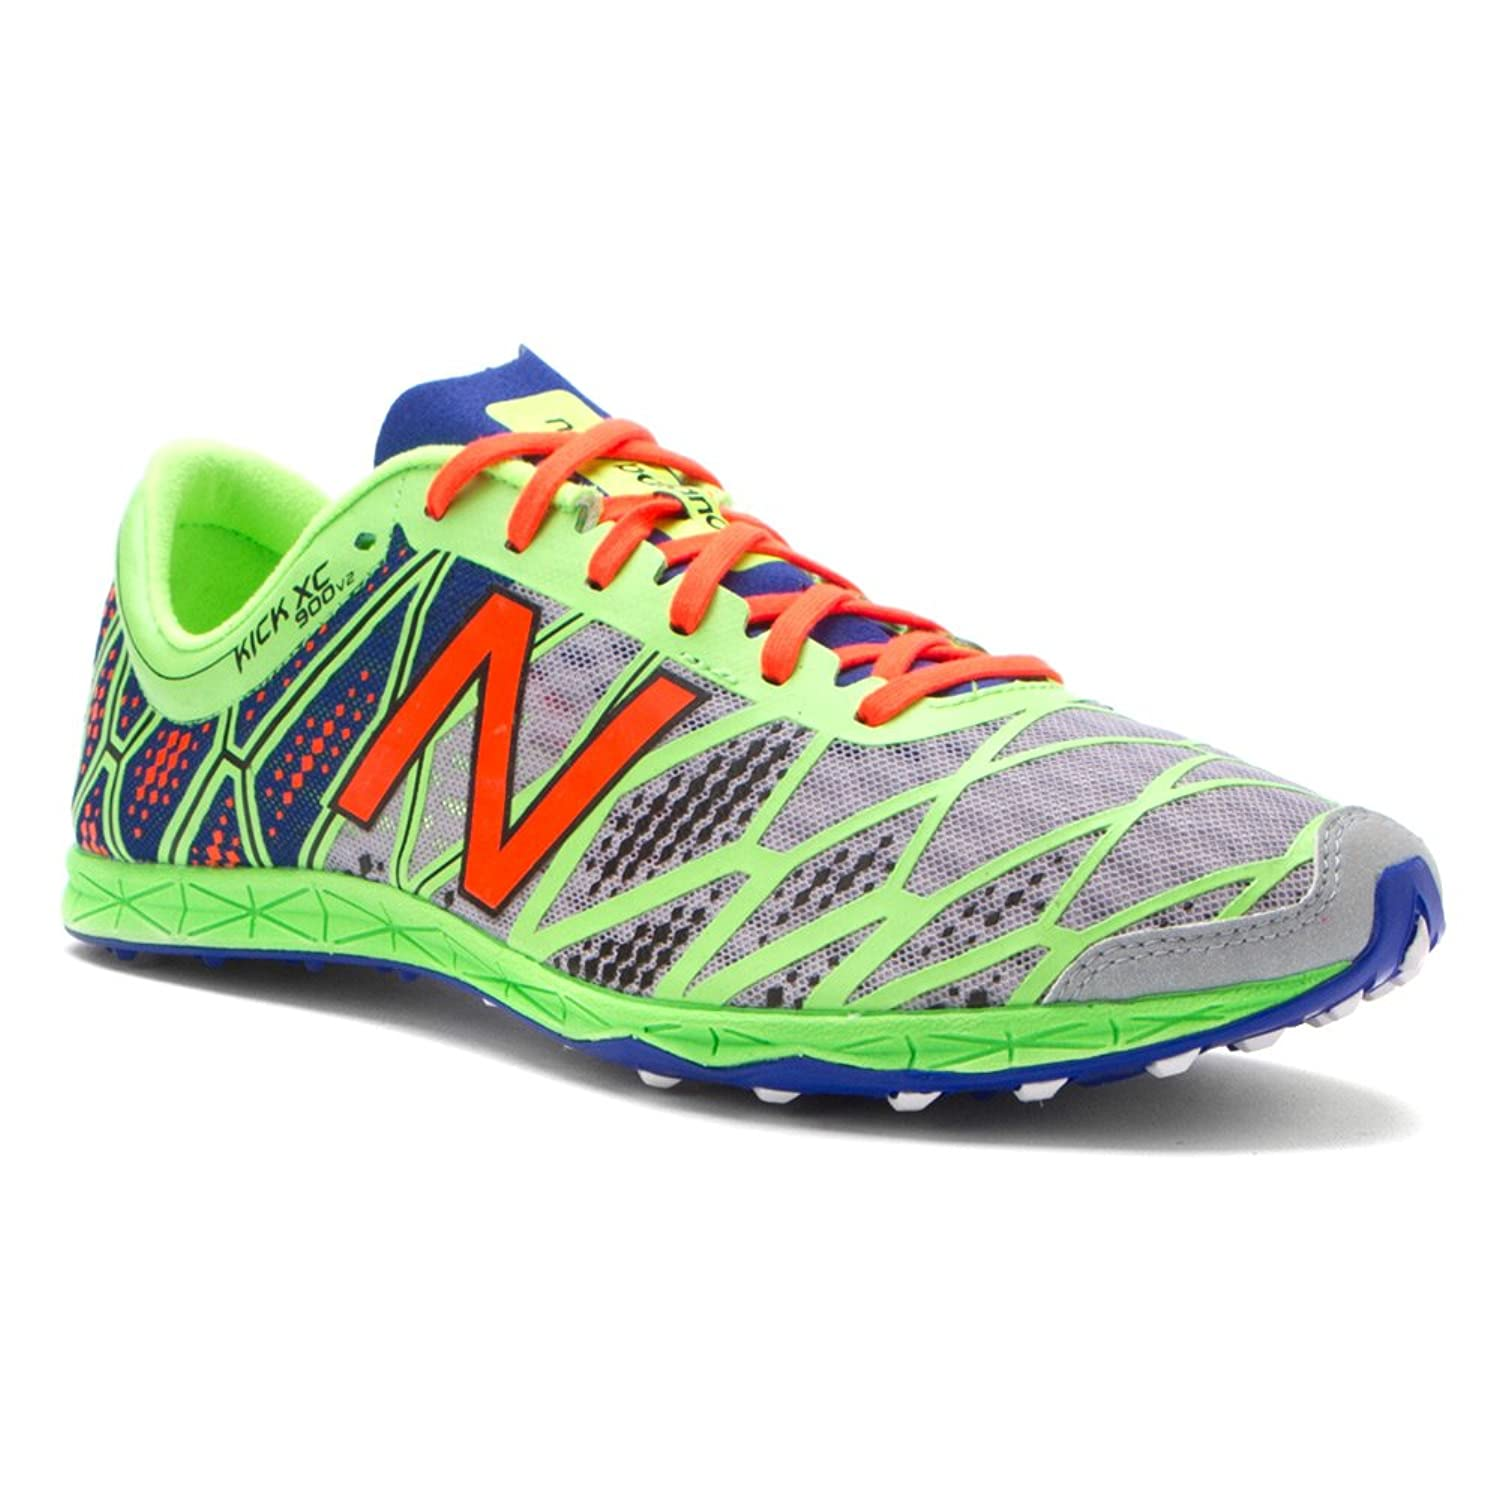 New Balance Spikes Cross Country Cross Country Spikes Shoe